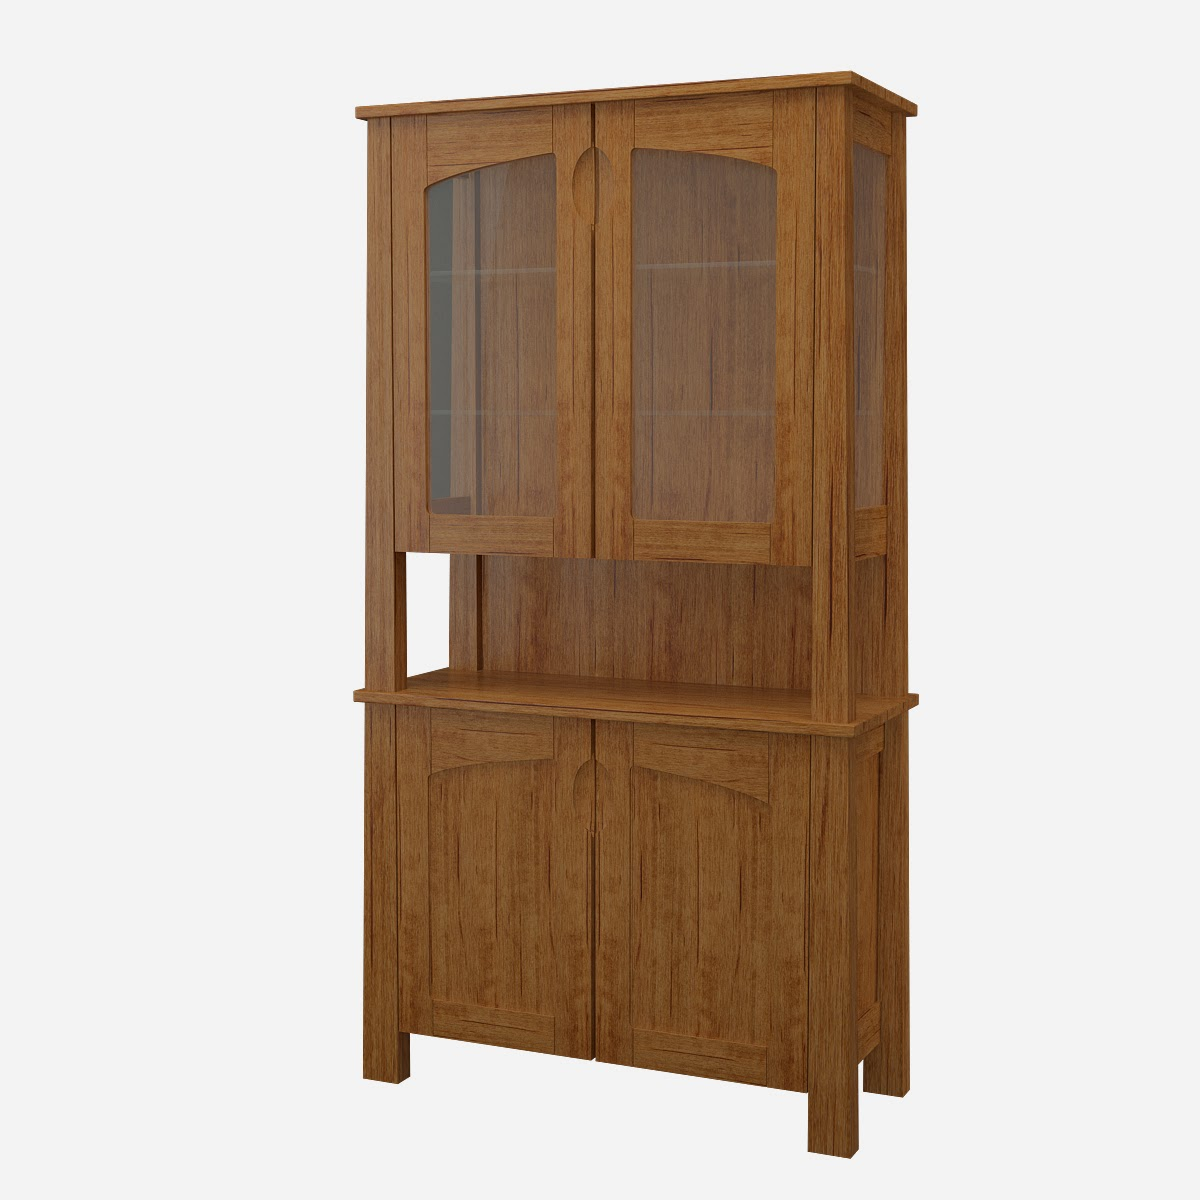 Luxor Kitchen Cabinets: China Cabinet In The Luxor Style